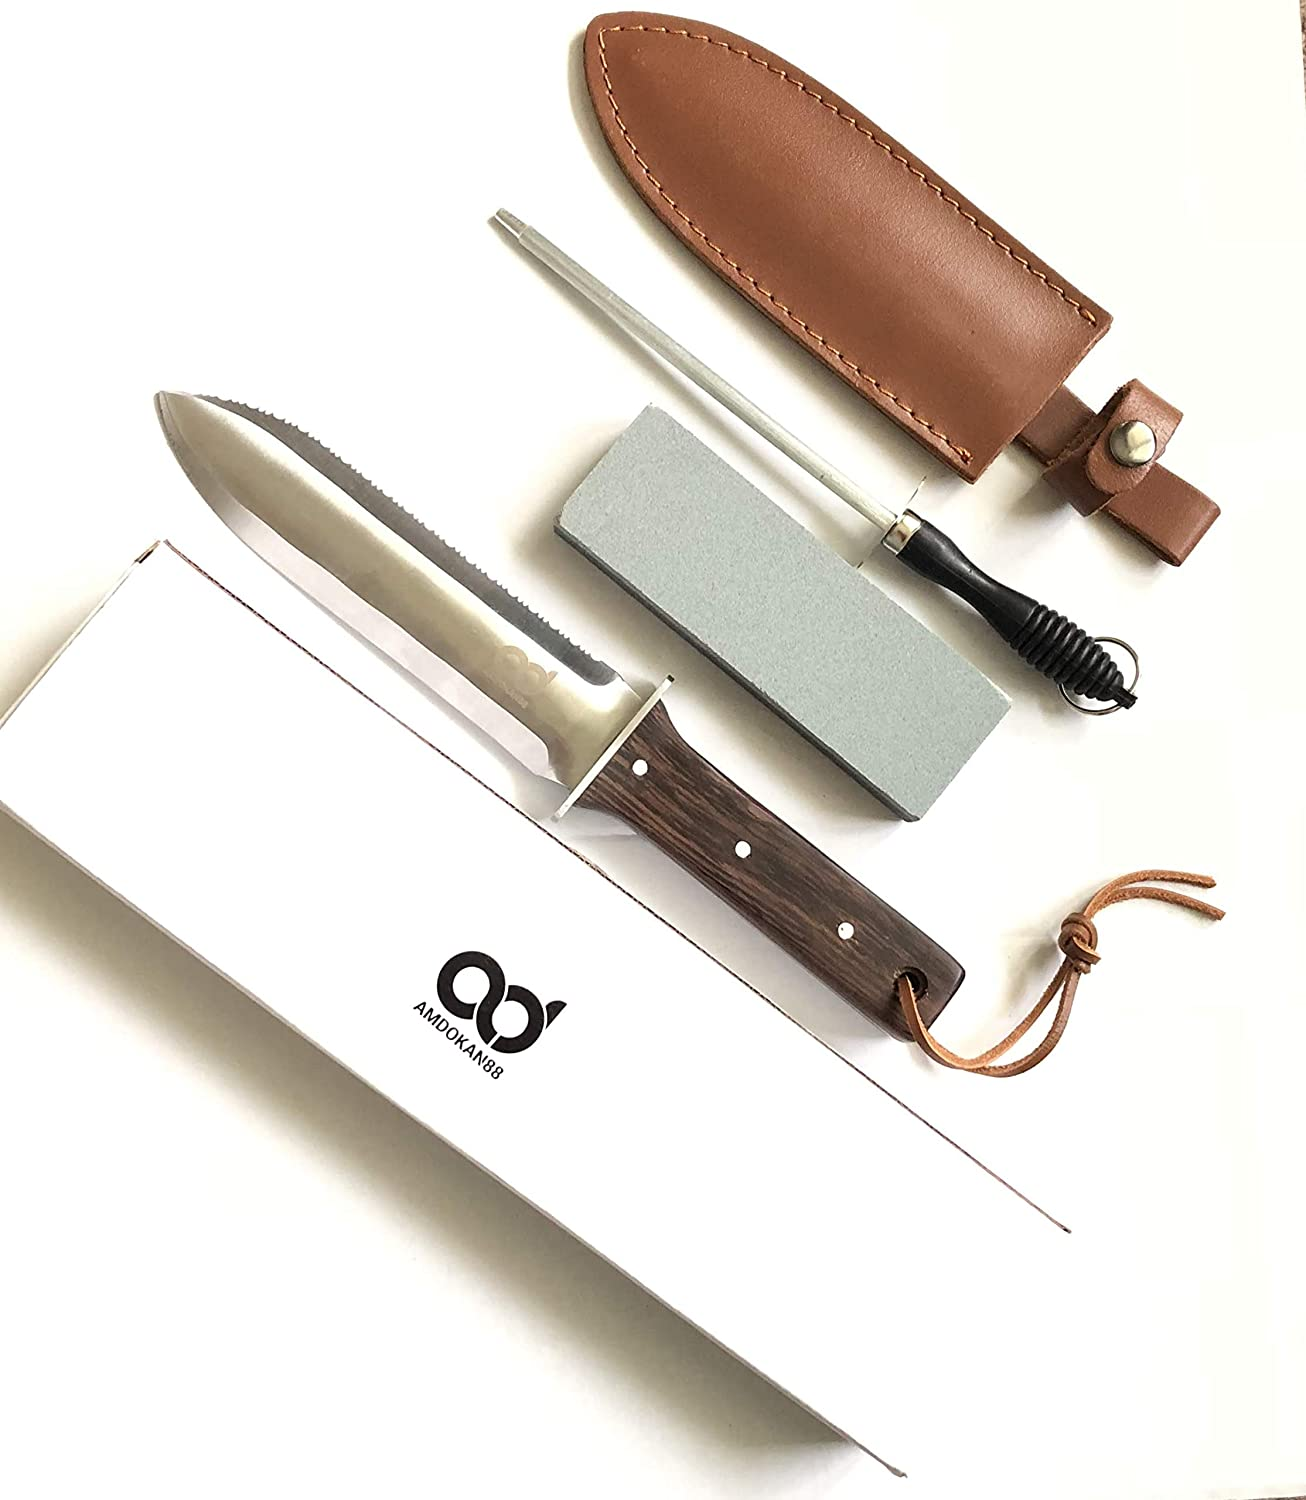 Amdokan88 Digging Knife with Leather Sheath Stainless Steel Sharpener Rod Serrated and Sharp Edges Camping Weeding Hori Hori Knife Full Tang Hardwood Ergonomic Handle (Dark Brown)